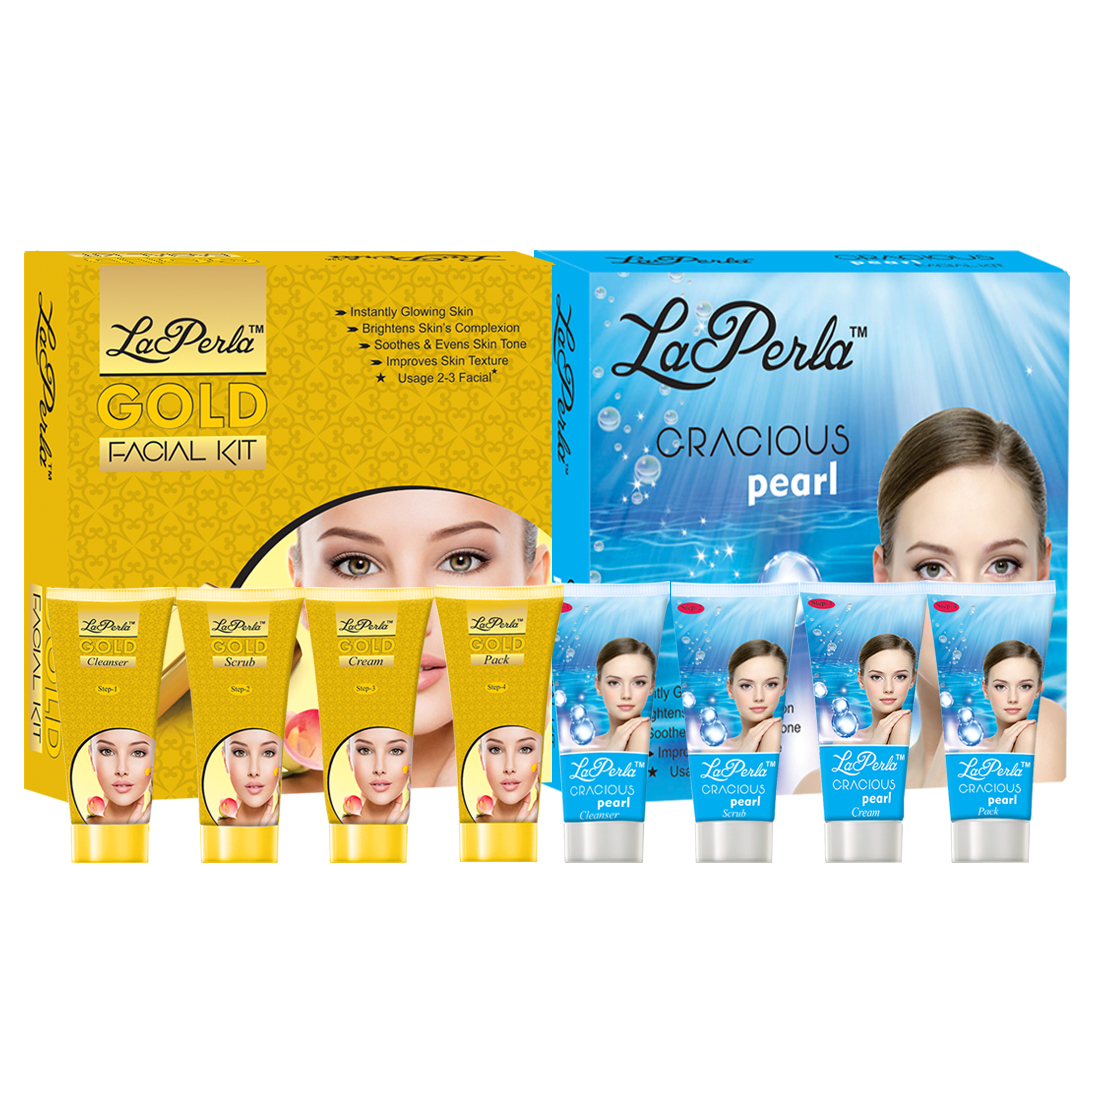 Laperla 3 in 1 Jewel Facial Kit With Multi Beauty Makeup Pack for Womens Gc910